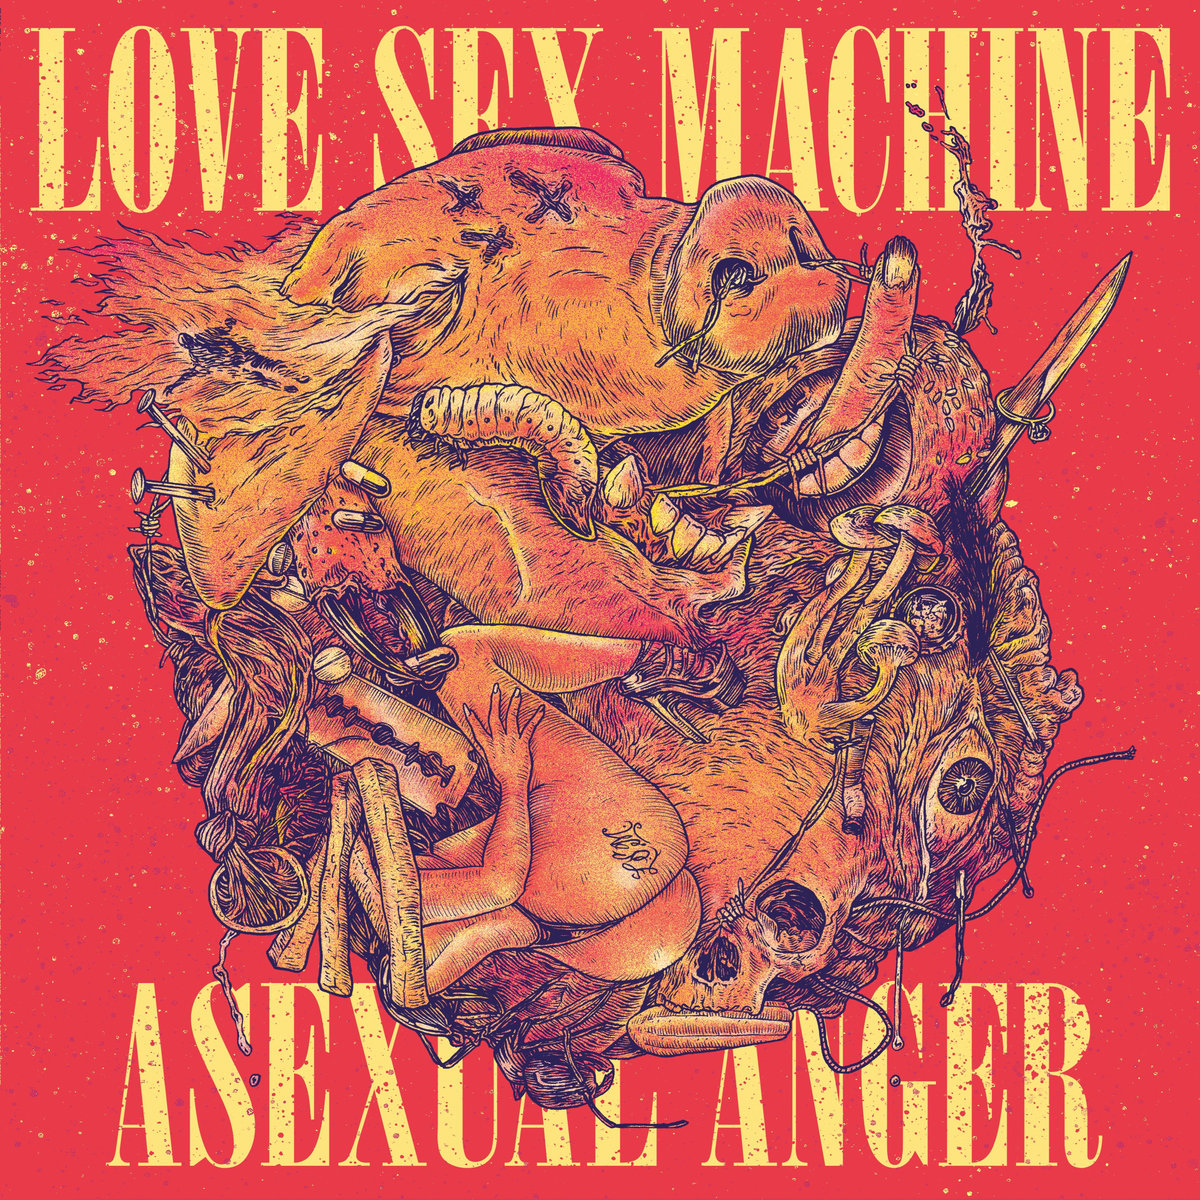 Love Sex Machine – Asexual Anger